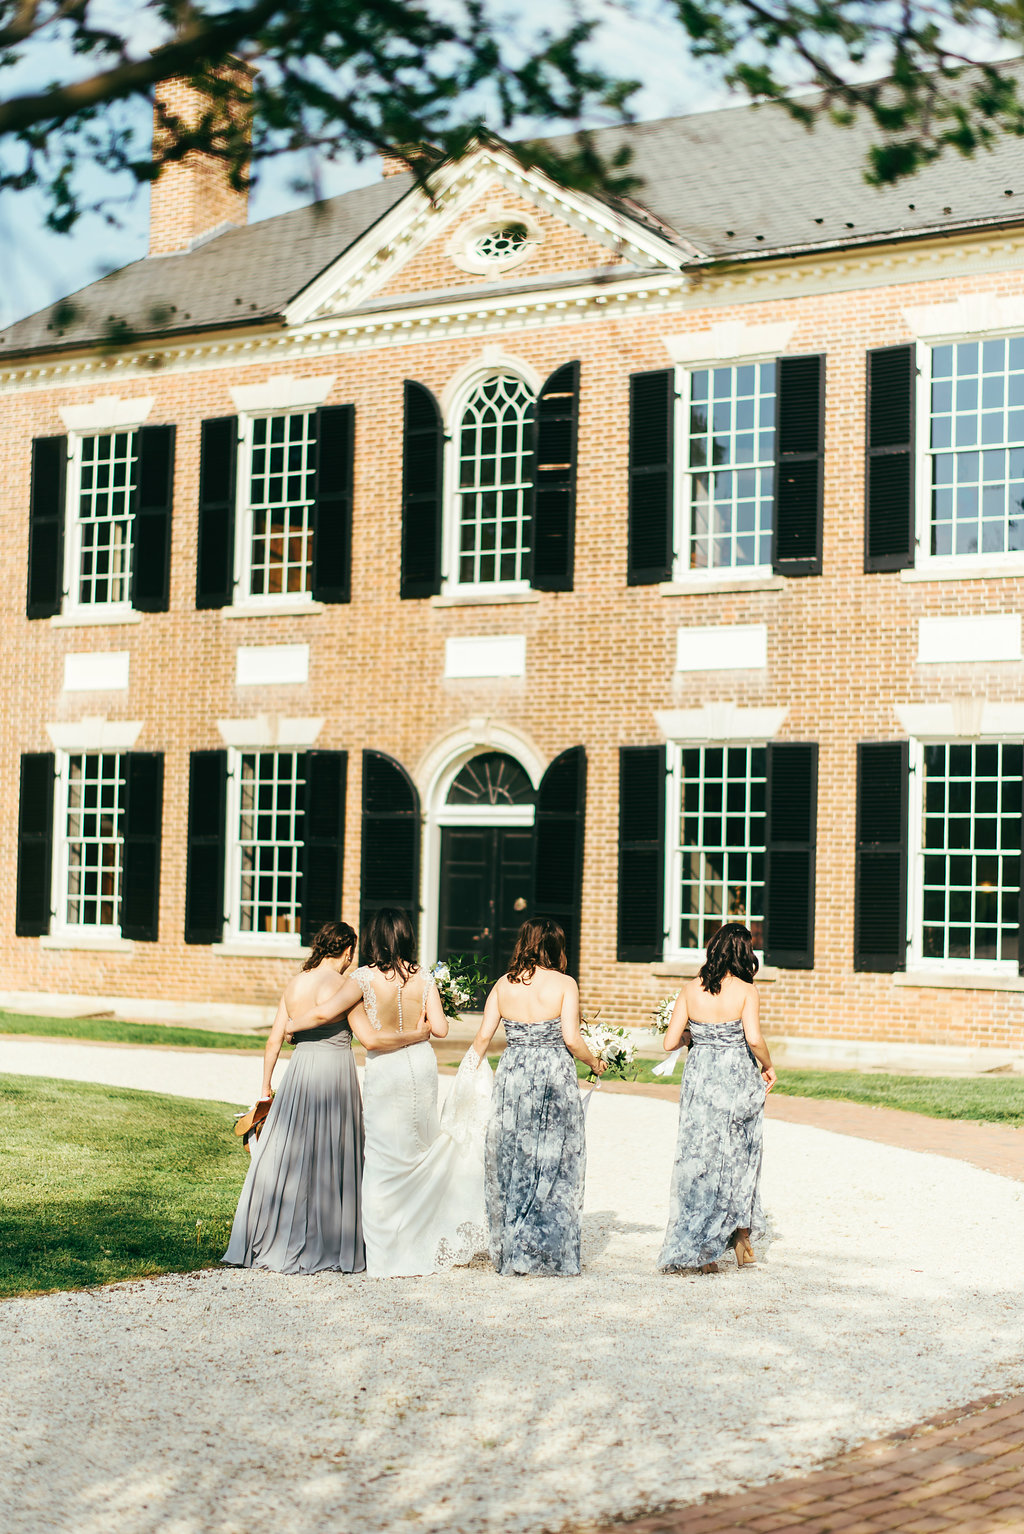 Atelier Ashley Flowers + Woodlawn + Pope Leighhey House + Anna Reynal Photography + DC Weddings + DC Florist  + bridesmaids-76.jpg